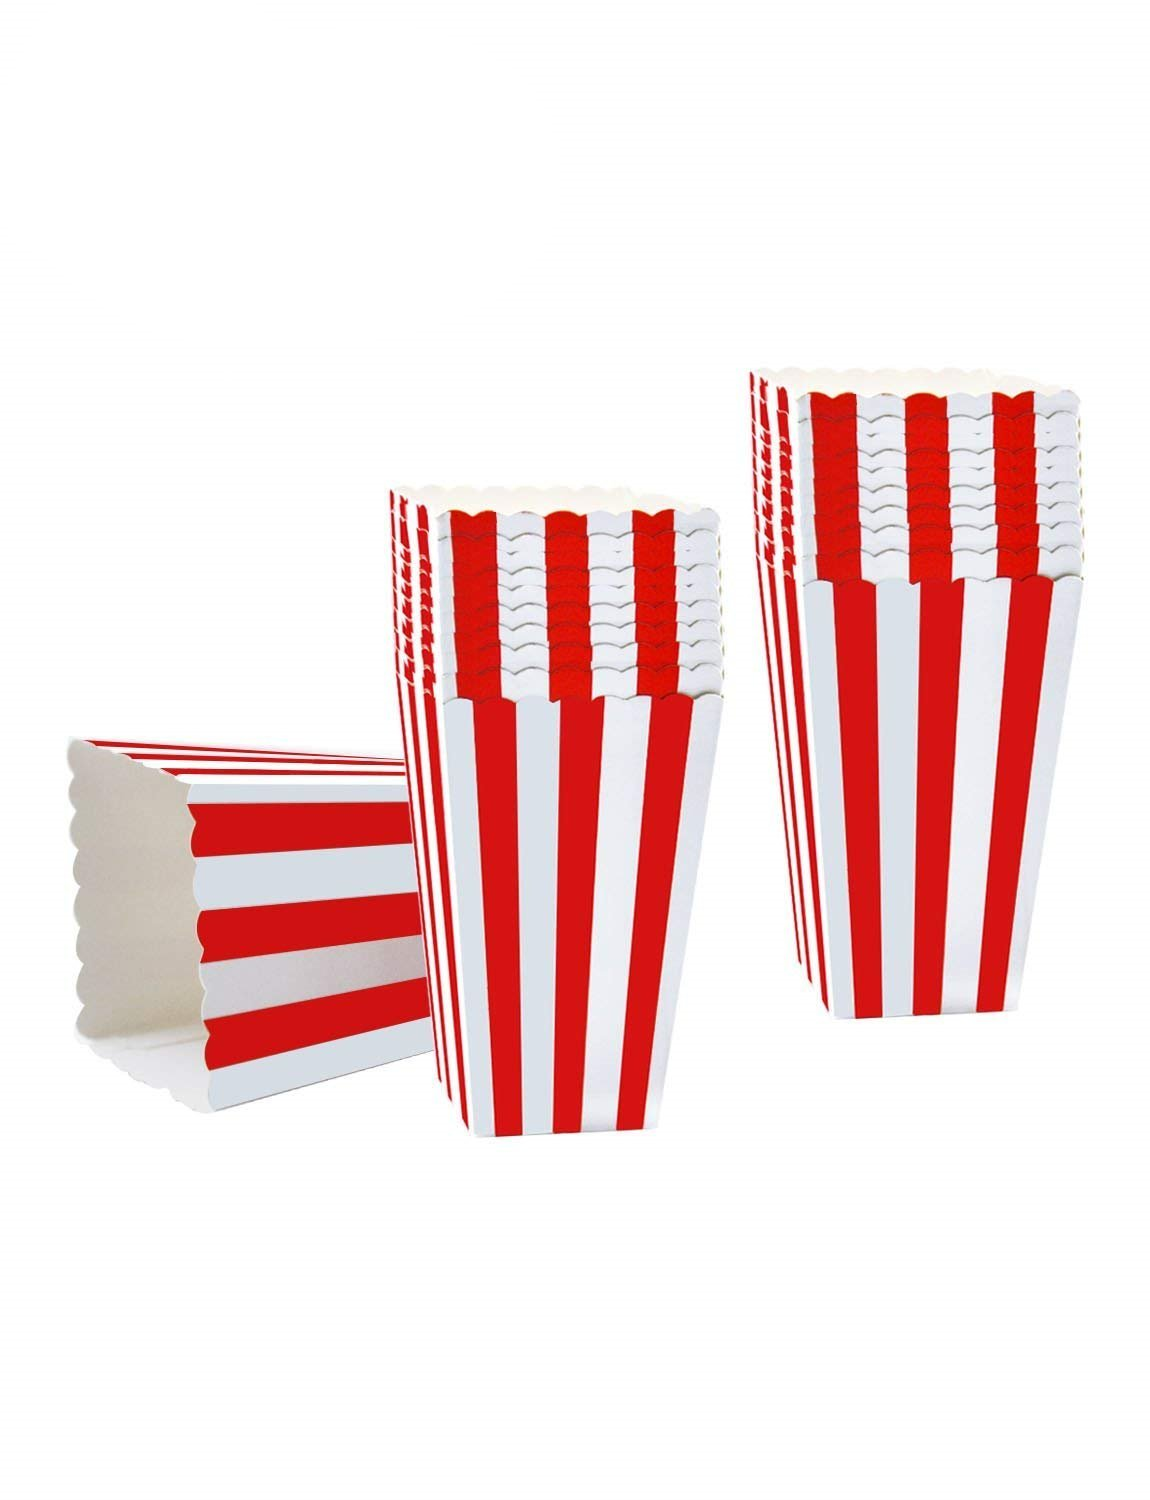 Gardome Popcorn Boxes - 48 Pcs Movie Theater Mini Paper Popcorn Boxes - Great for movie night, Carnival Party Decorations, Wedding or Birthday favor boxes